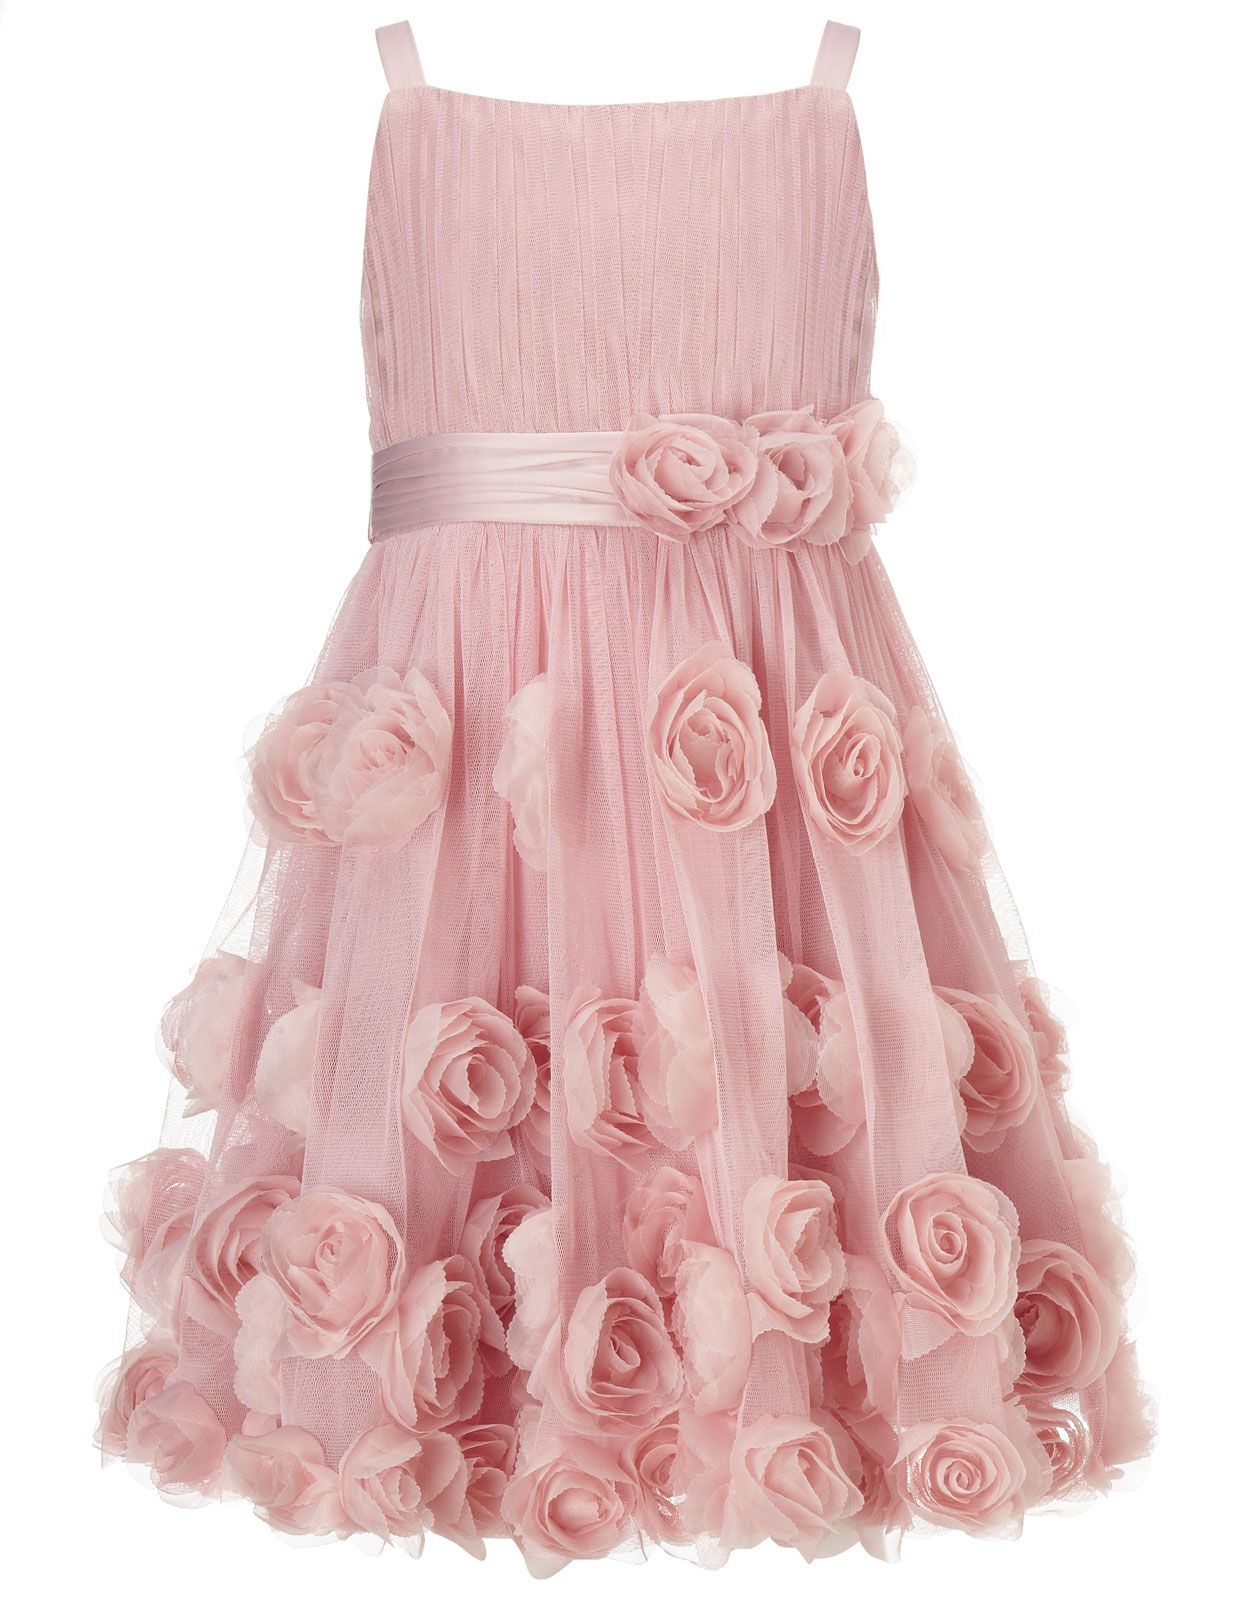 Rosie cascade dress pink monsoon dress for the wedding monsoon rosie cascade dress at ezibuy australia buy womens mens and kids fashion online ombrellifo Images